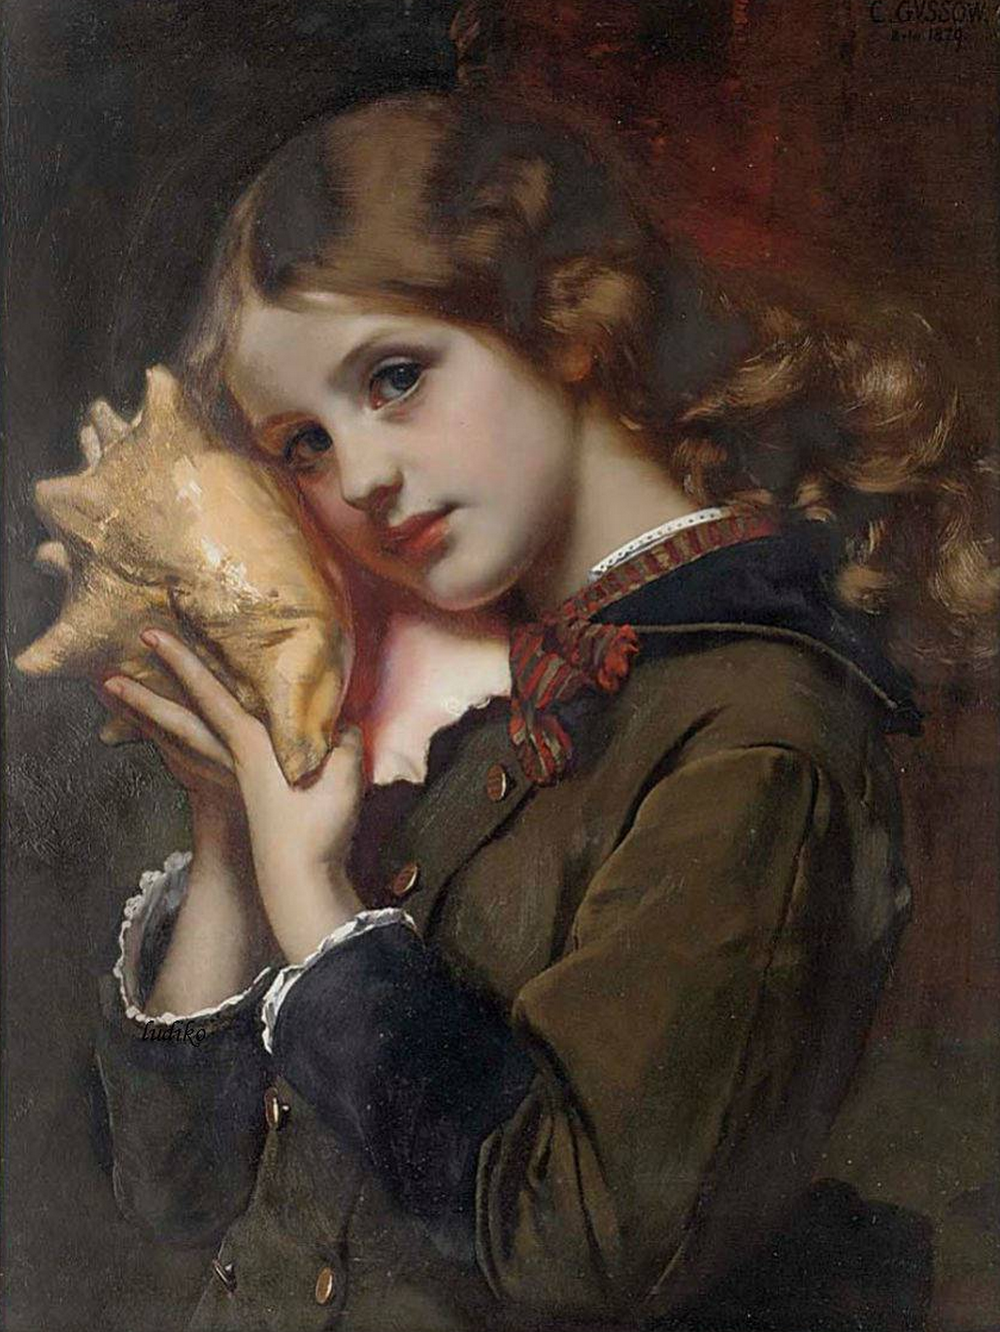 Sound of the Sea by Karl Gussow